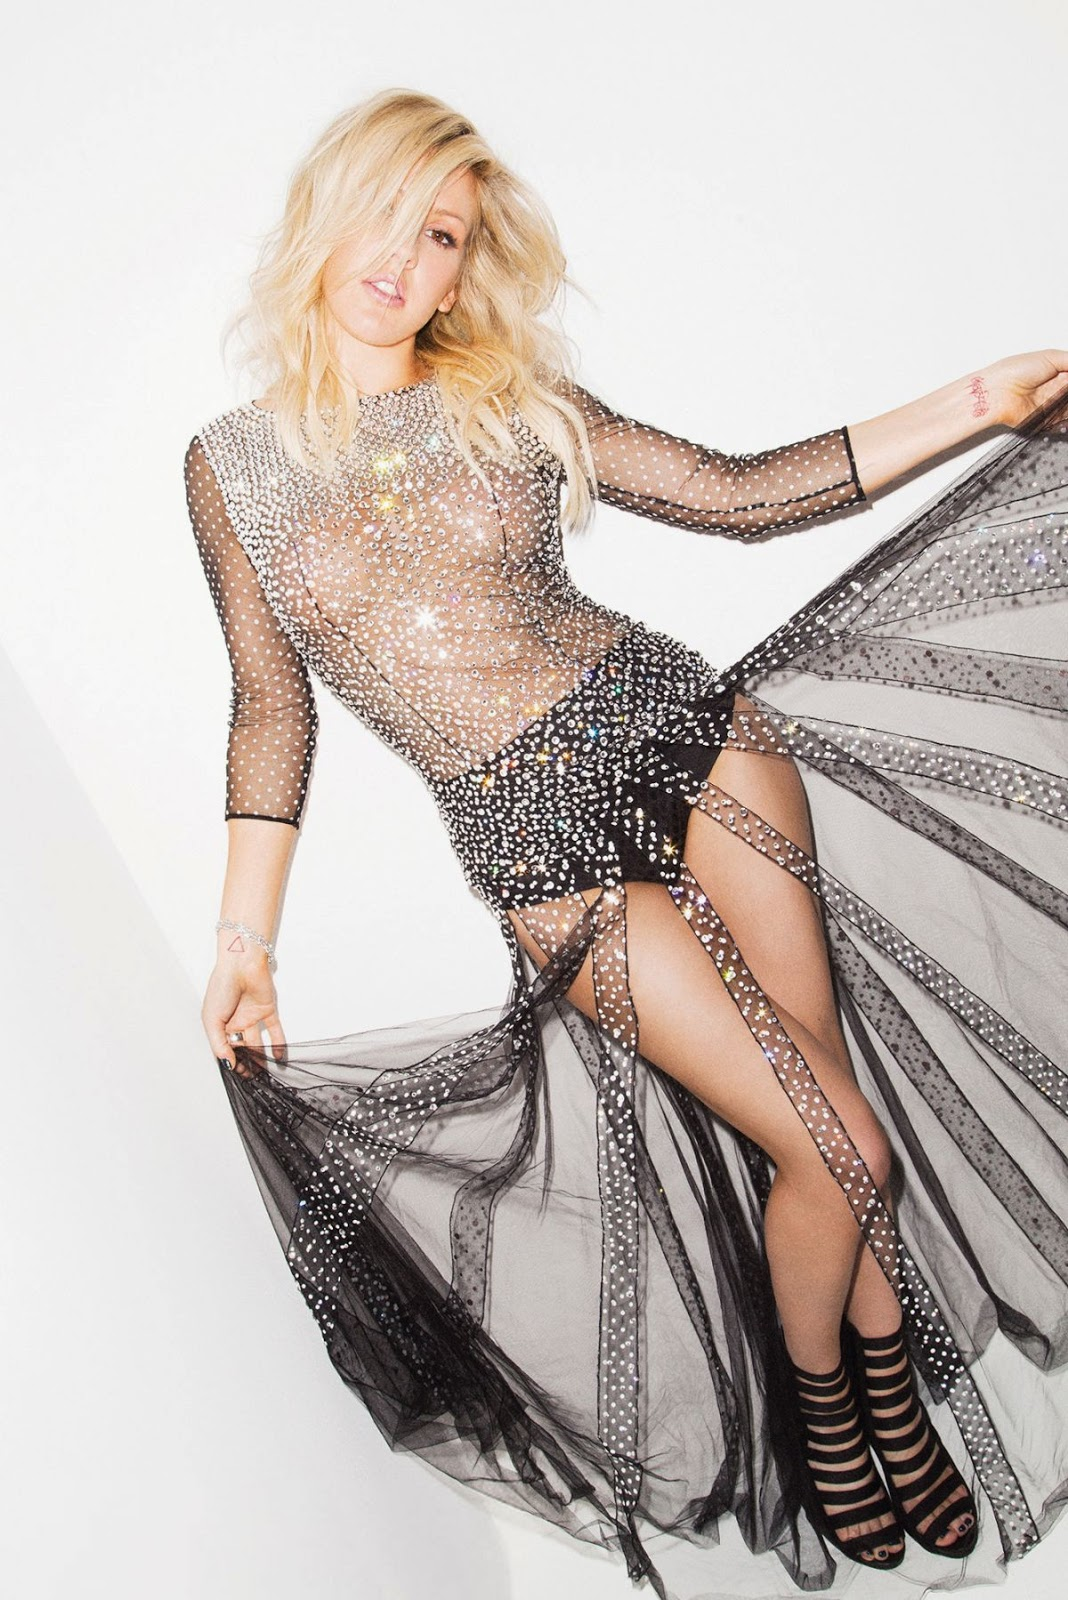 Ellie Goulding features for the Cosmopolitan May 2014 issue